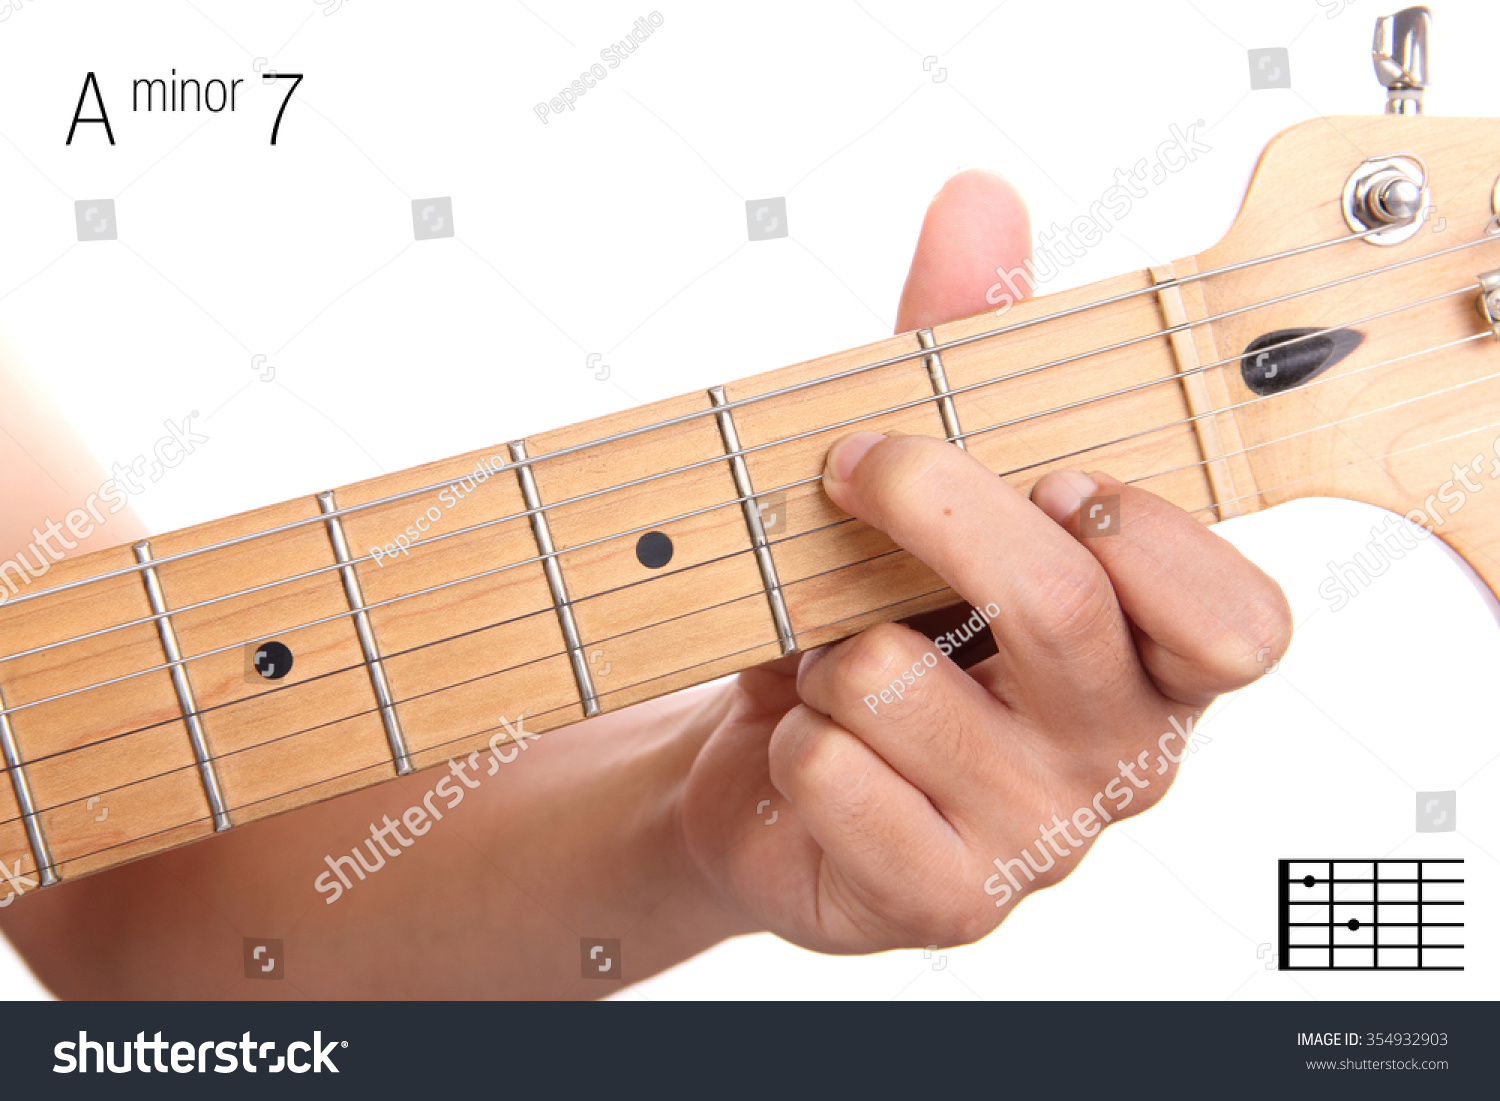 Am 7 Minor Seventh Keys Guitar Tutorial Stock Photo Edit Now